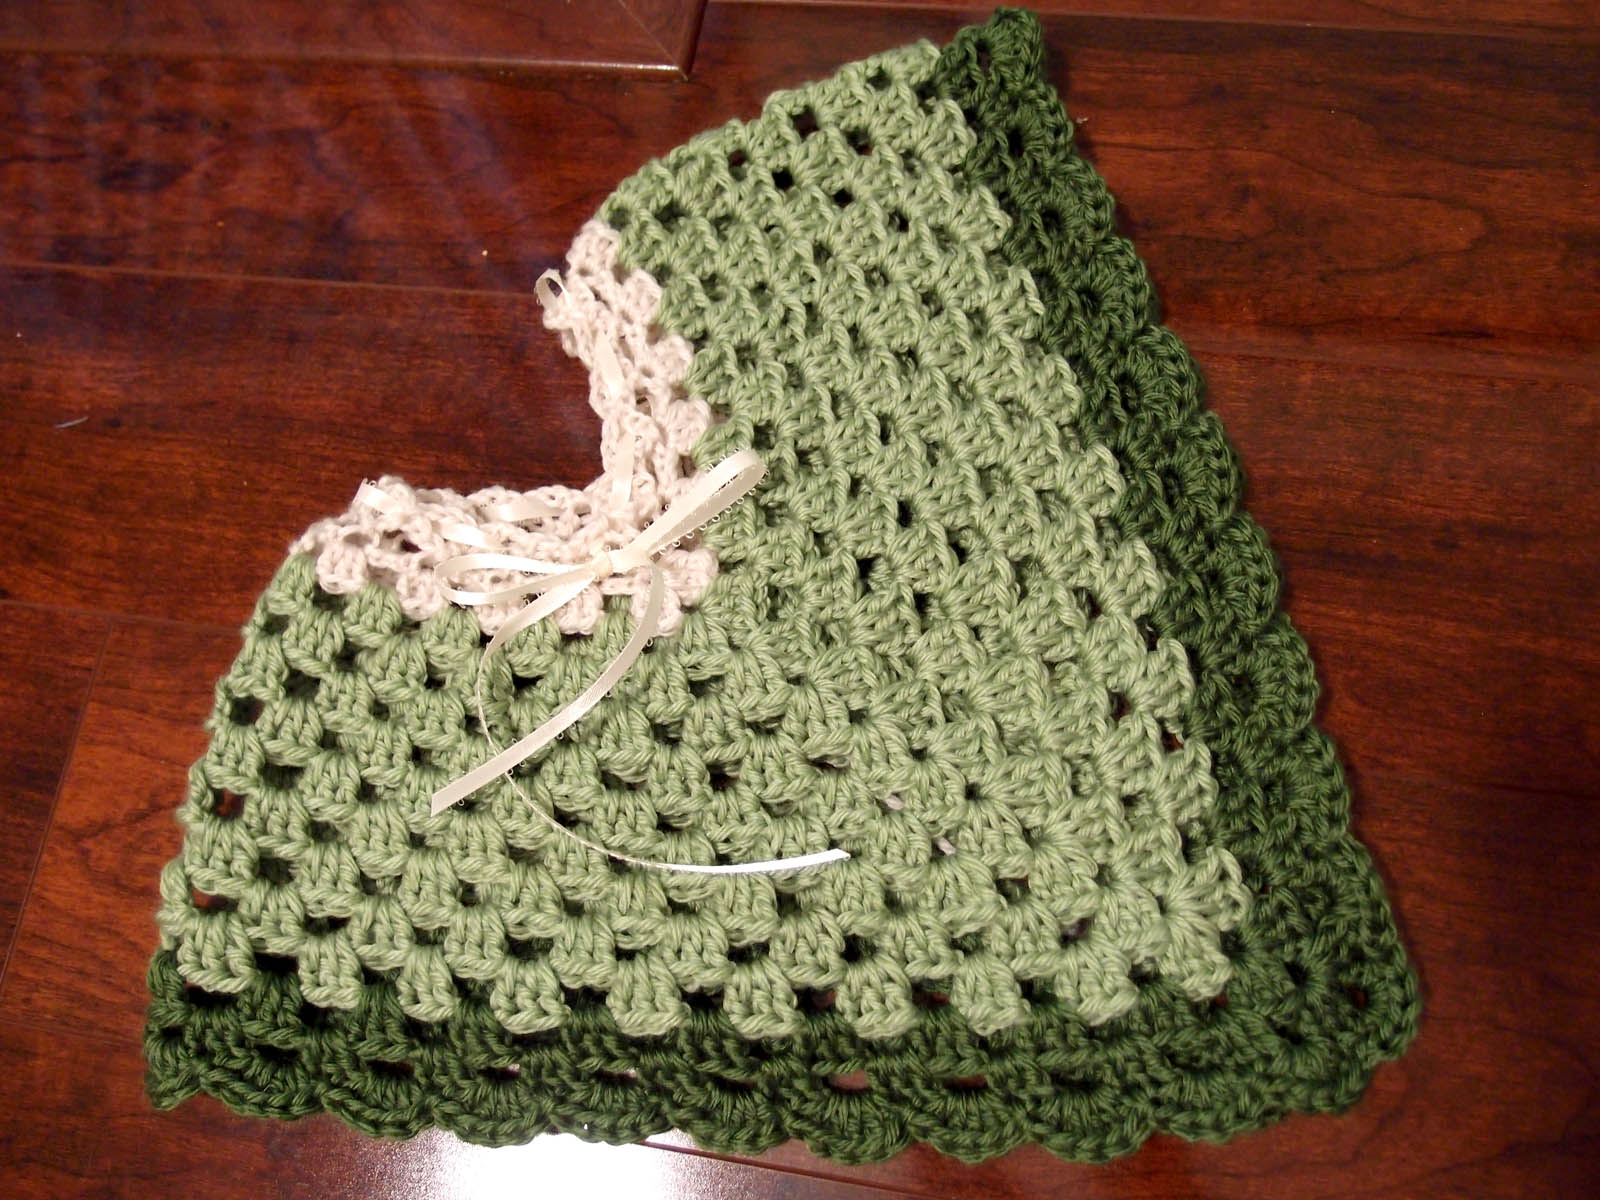 CHILDS CROCHET PONCHO PATTERN Crochet Patterns